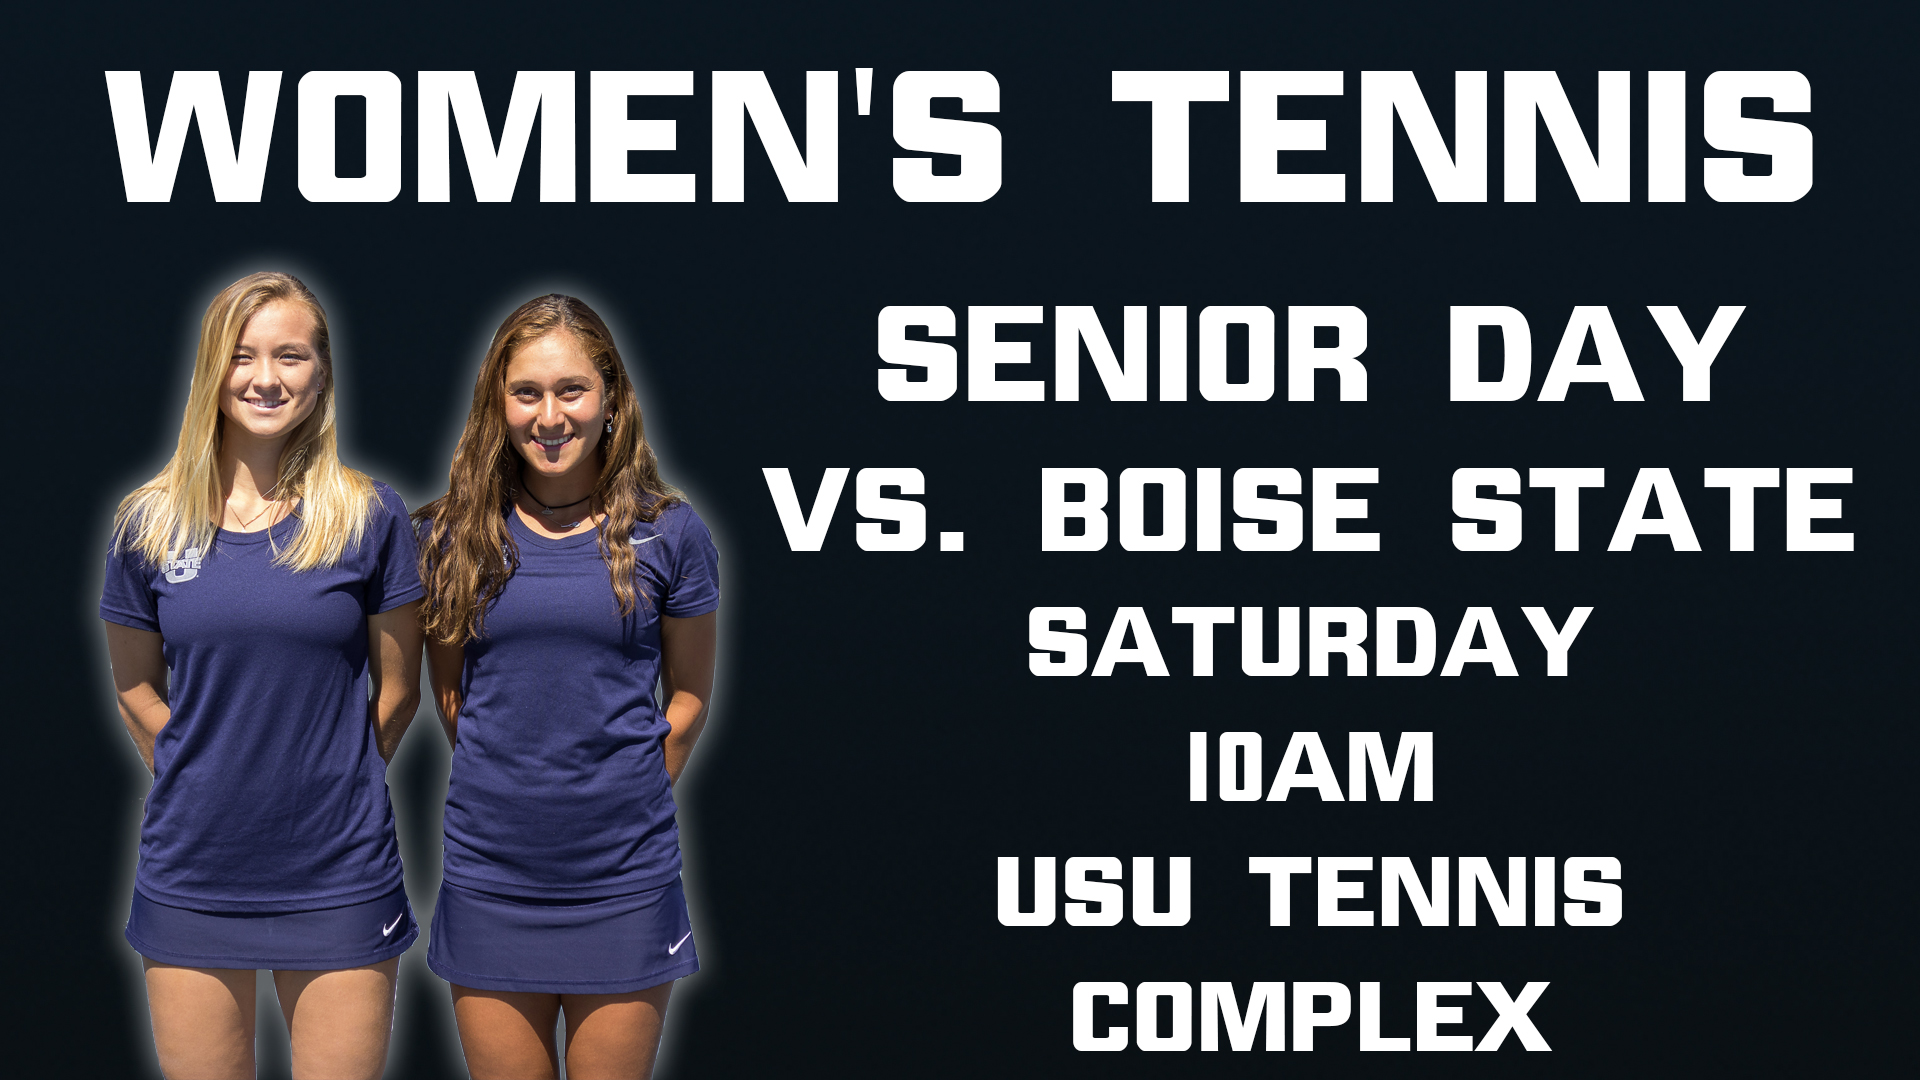 Women's Tennis game vs Boise